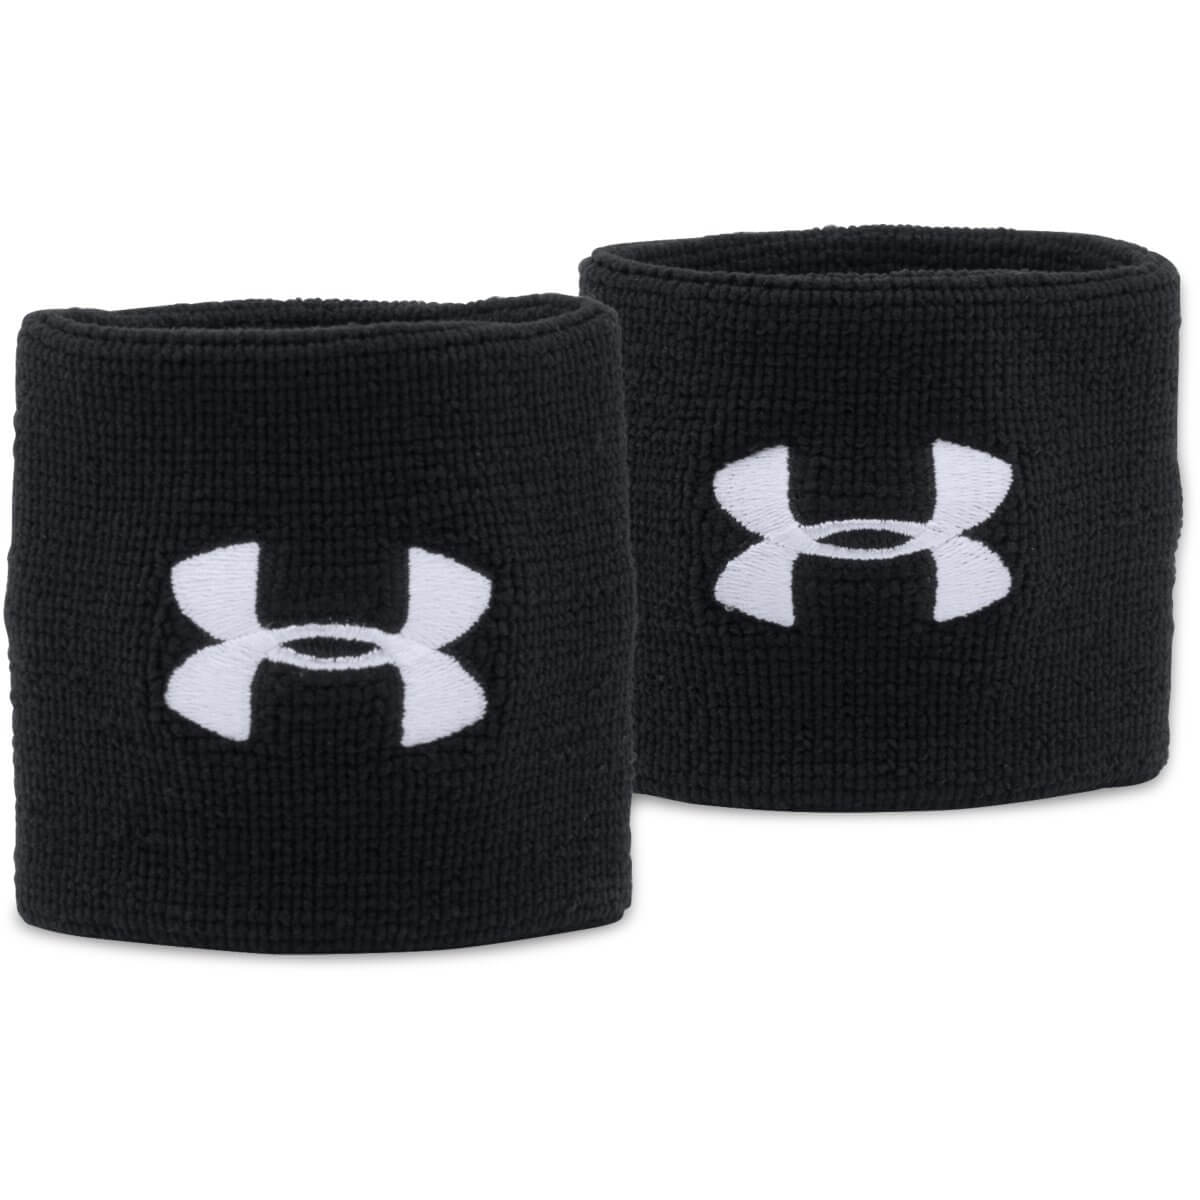 Performance Wristbands Black - Under Armour - Black